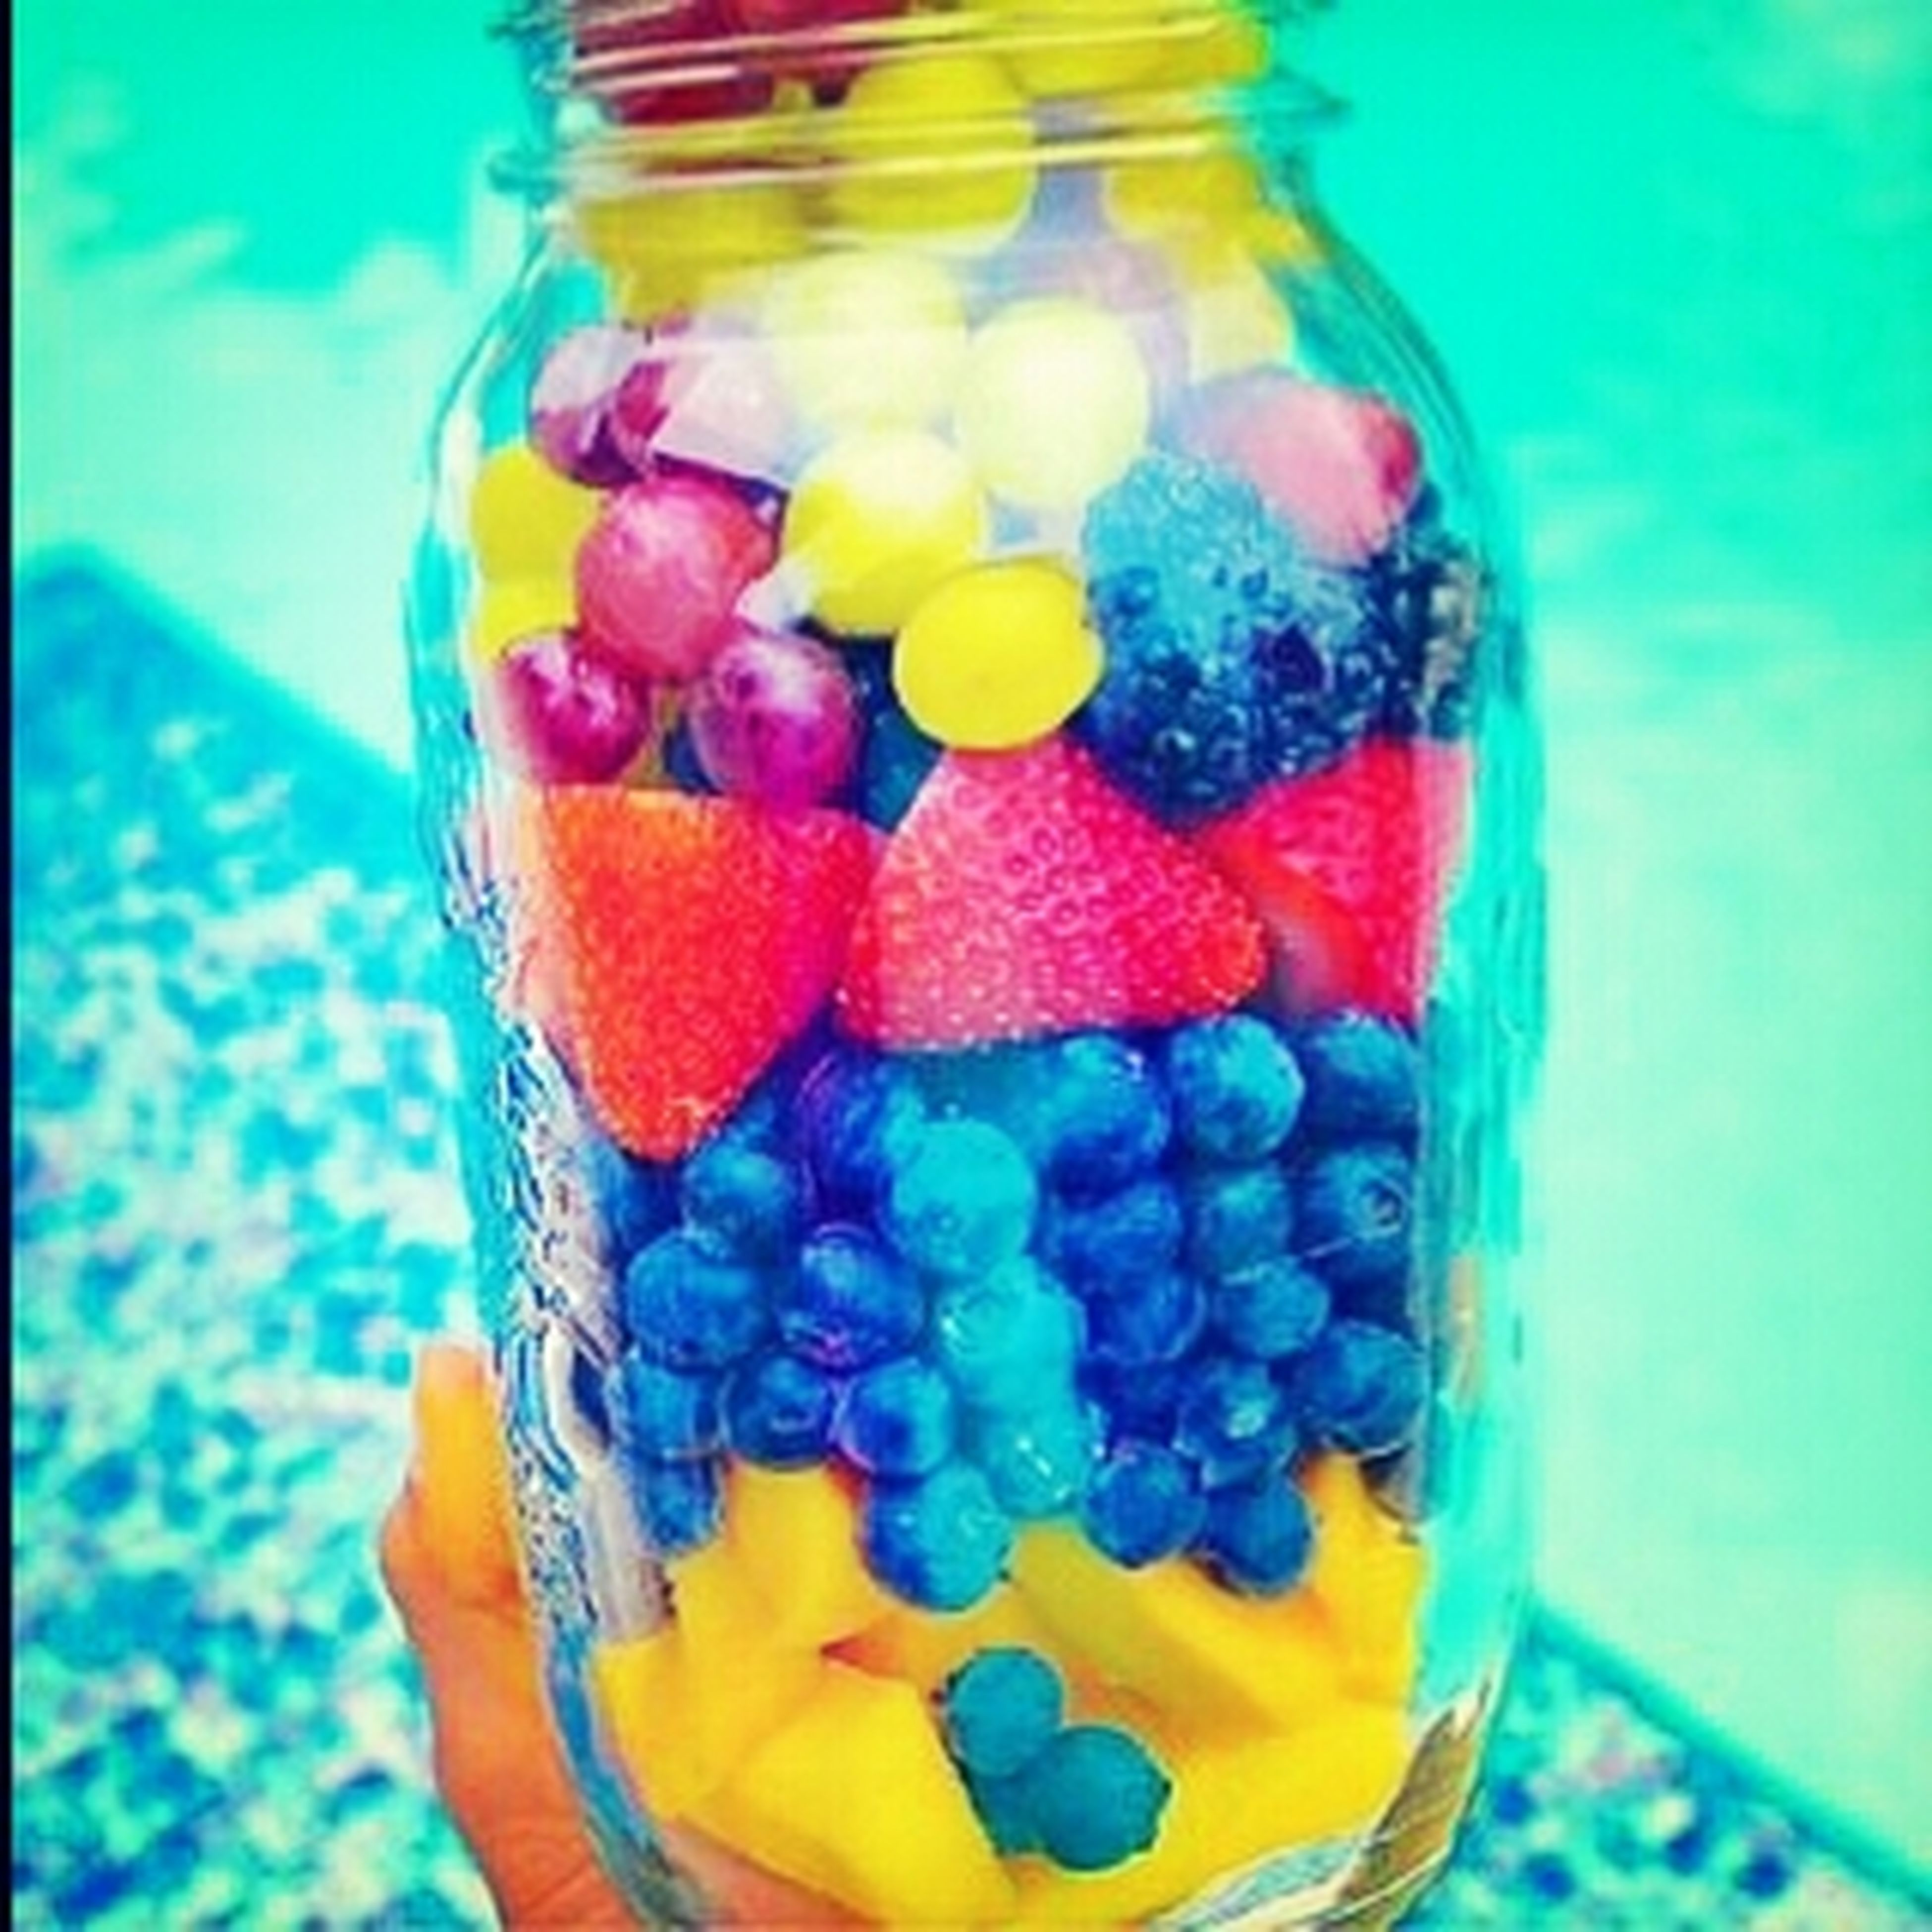 indoors, multi colored, food and drink, still life, sweet food, close-up, freshness, food, colorful, glass - material, dessert, blue, candy, fruit, unhealthy eating, indulgence, table, variation, yellow, transparent